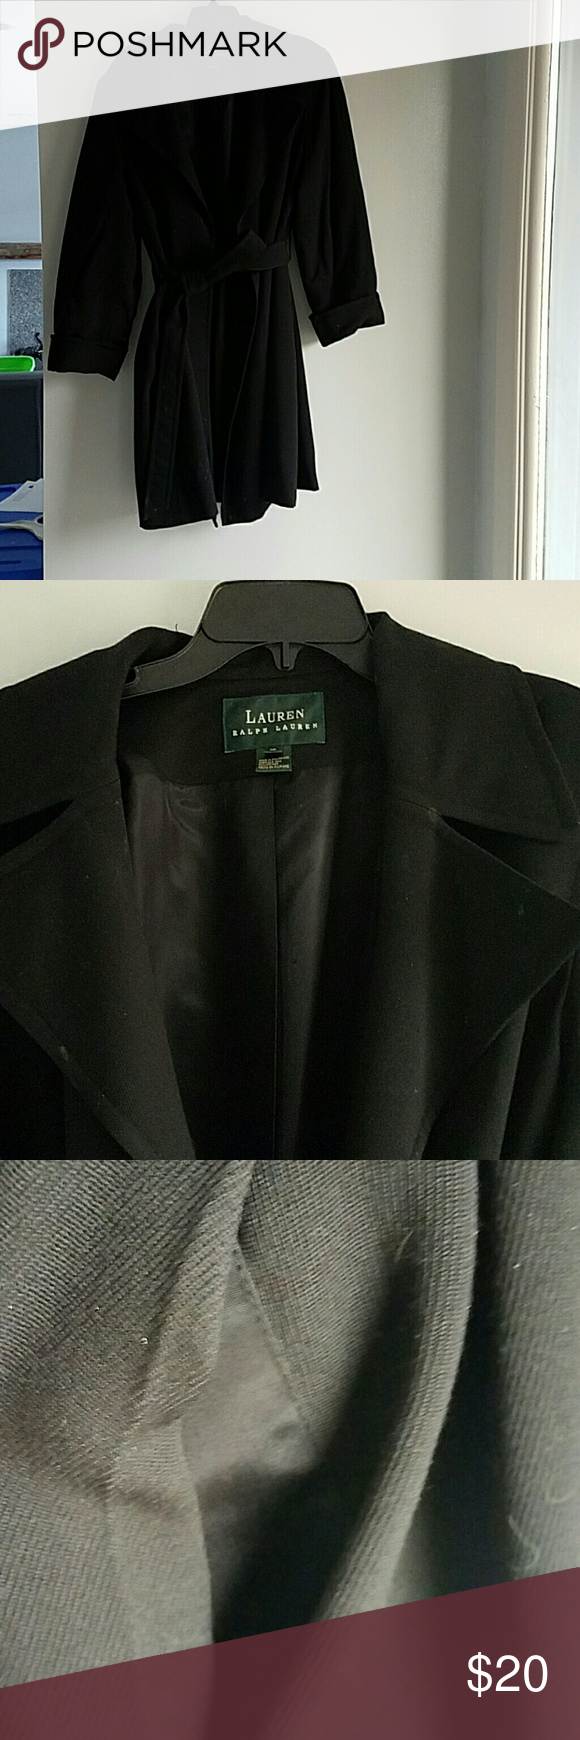 RALPH LAUREN black trench coat. Needs the cleaners but in good condition Jackets & Coats Trench Coats